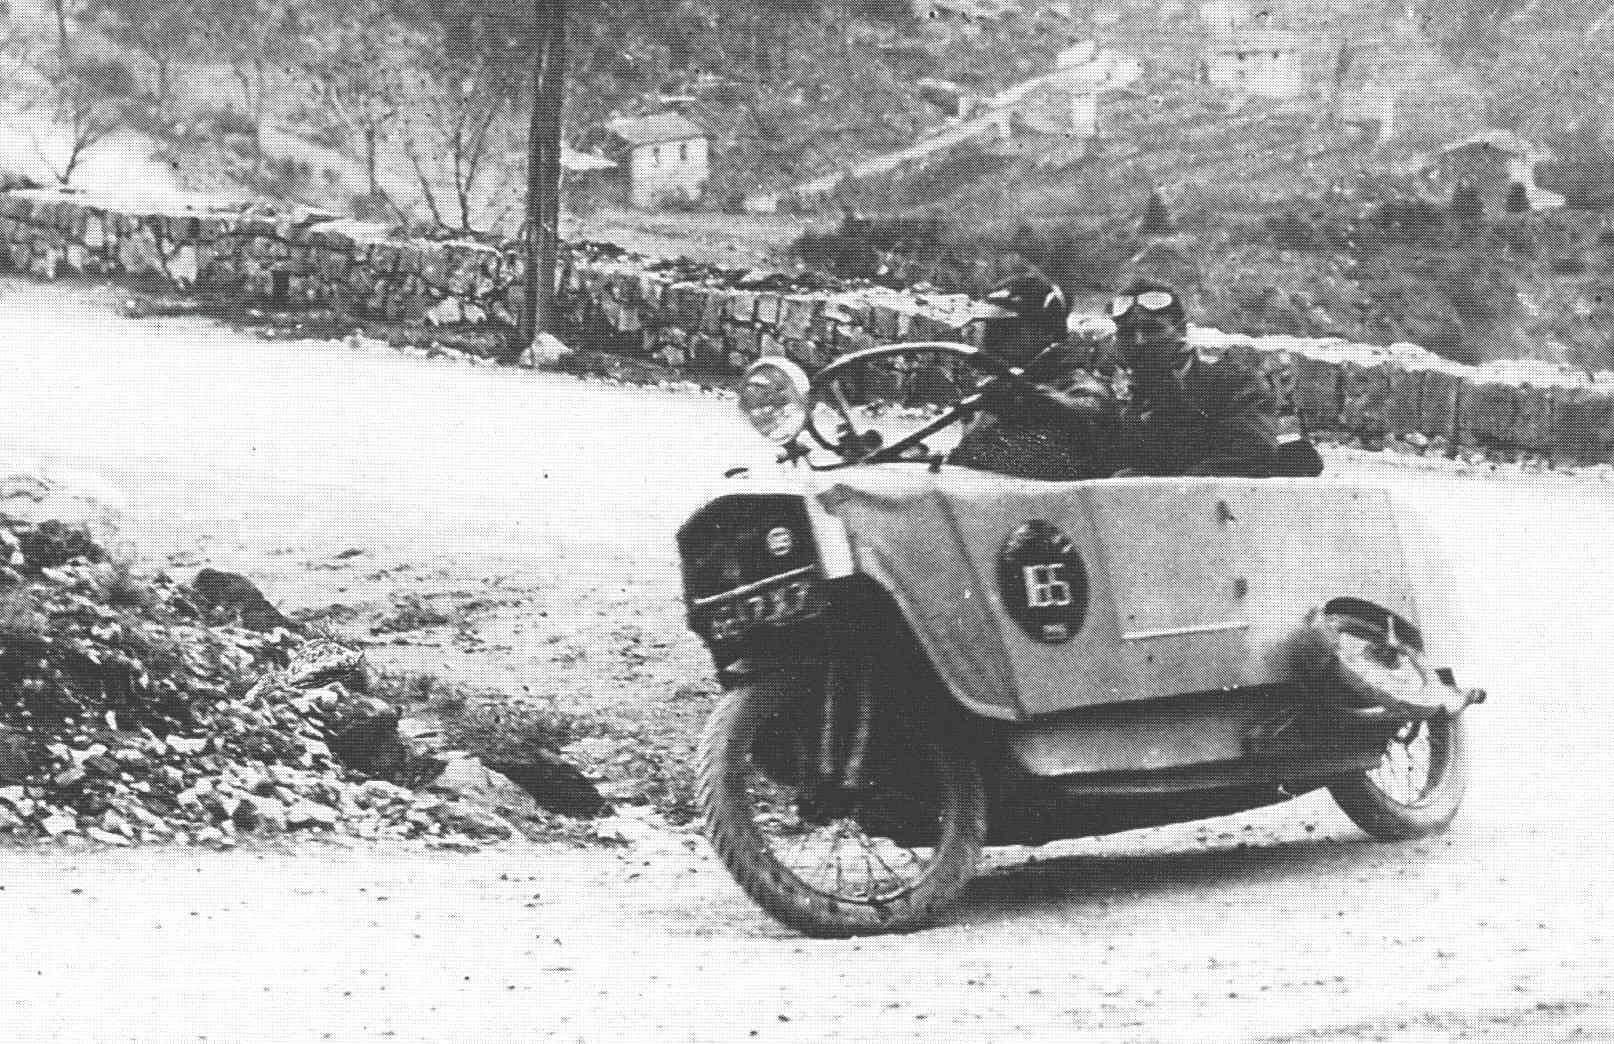 Two+two-wheeled car was manufactured for Établissements Monotrace S.A. (previously Ateliers du Rond Point) in France, under license from Mauser of Germany (1925-1928)